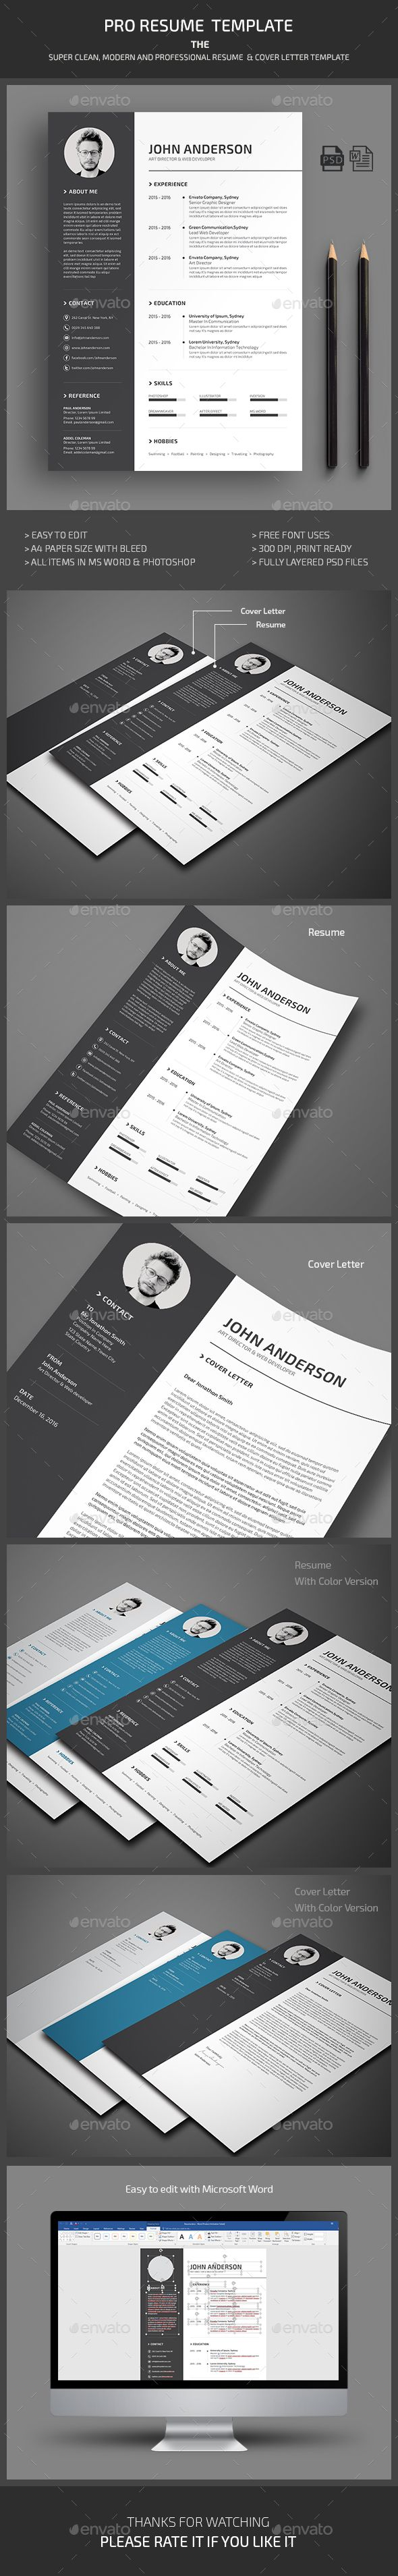 Construction Worker Resume Word  Best Images About Resume On Pinterest  Template Creative  Chronological Order Resume with Operations Manager Resume Examples Word Resume Cv Resume Templateindesign  Accountant Assistant Resume Word